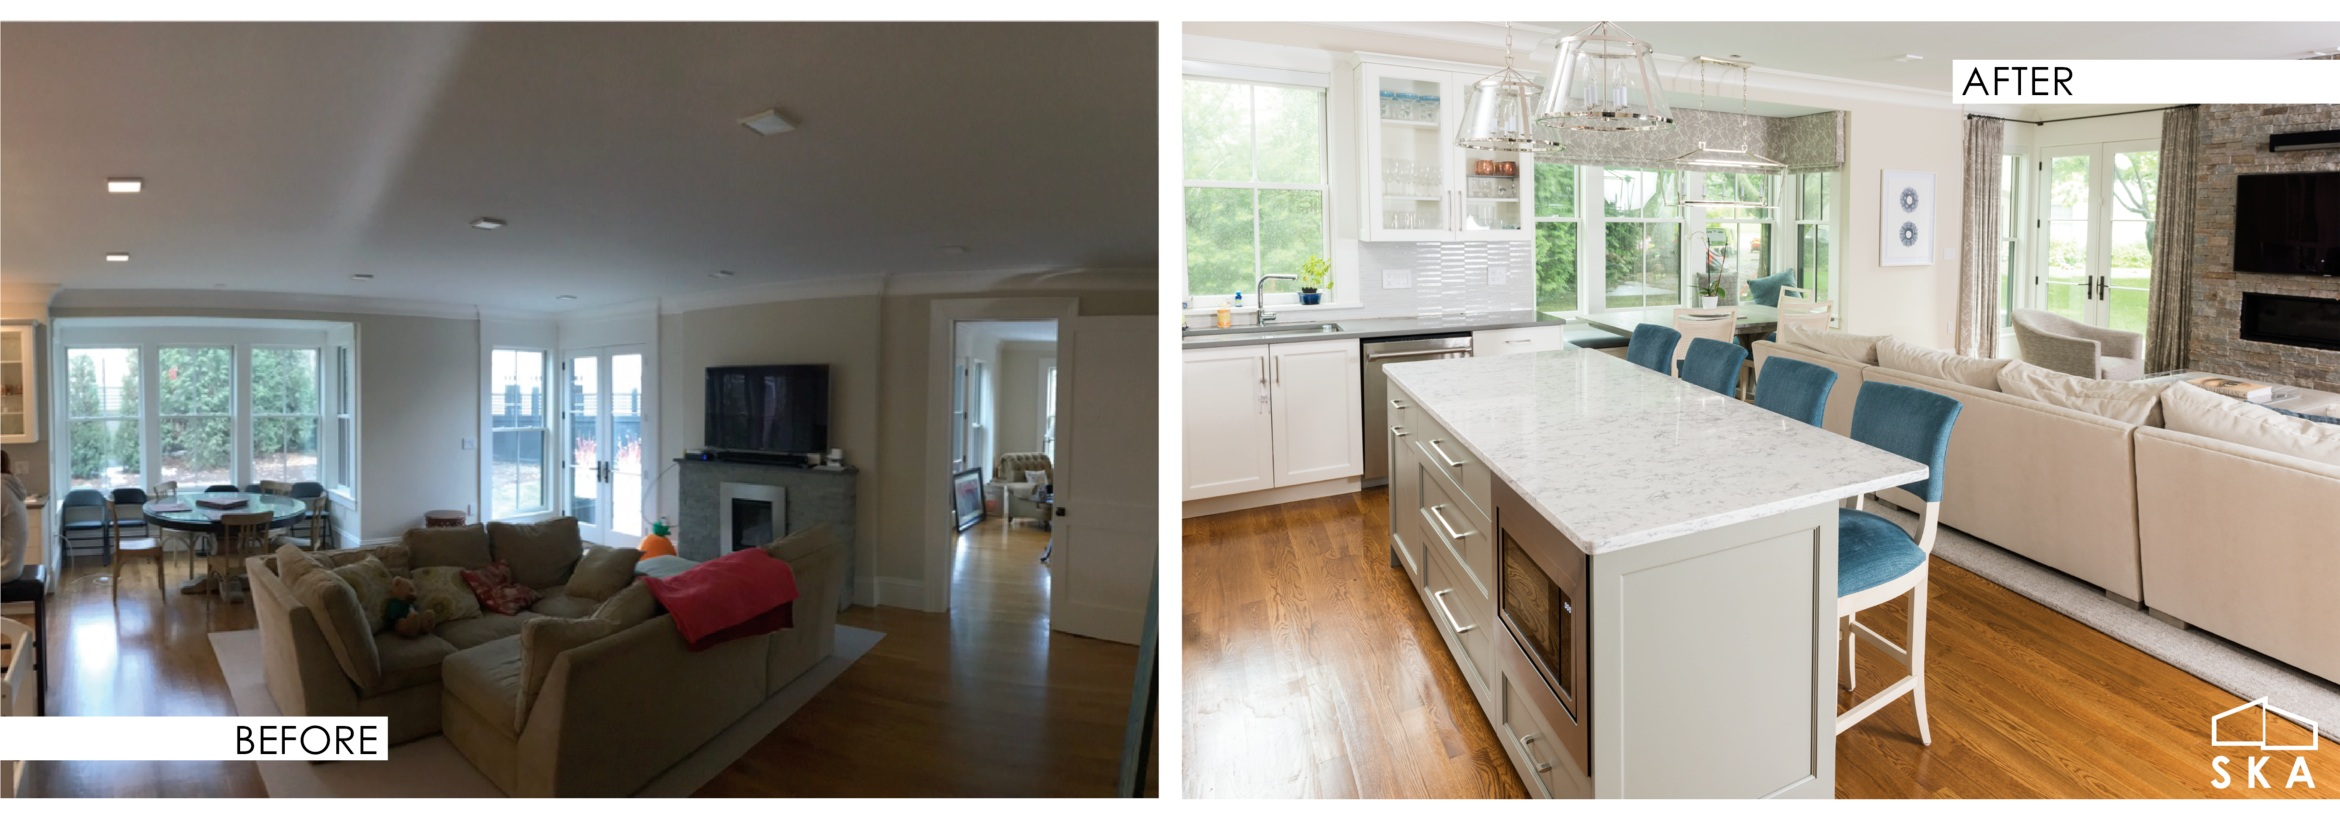 Before+After_175_Coolidge_kitchen.png